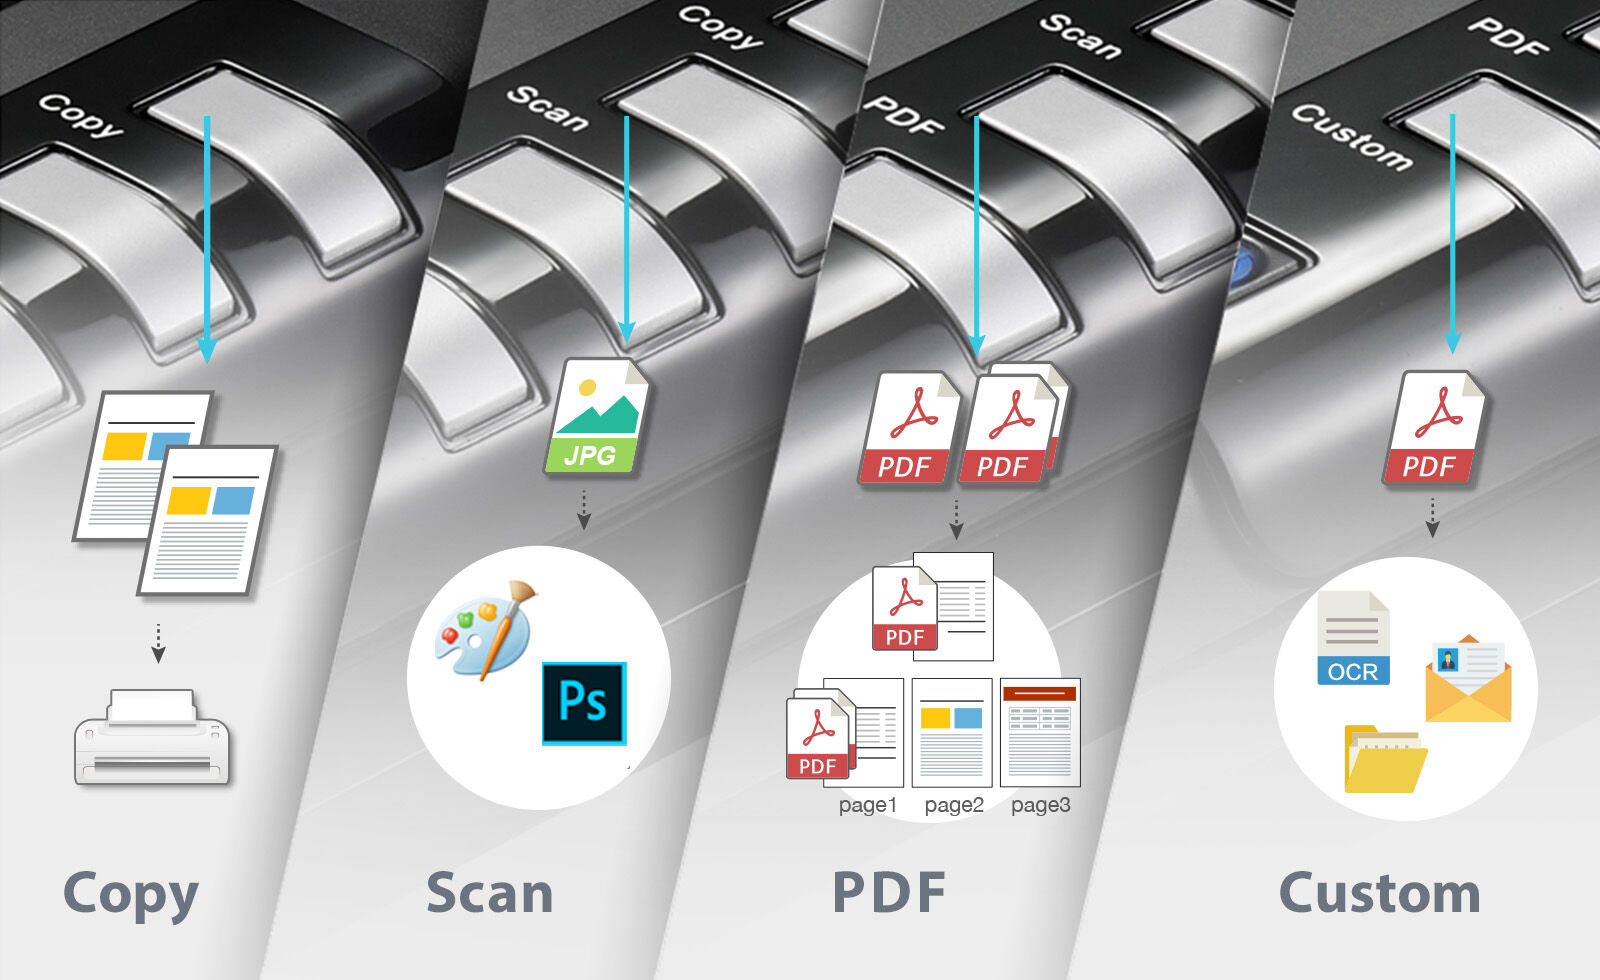 Copy, scan, PDF and custom